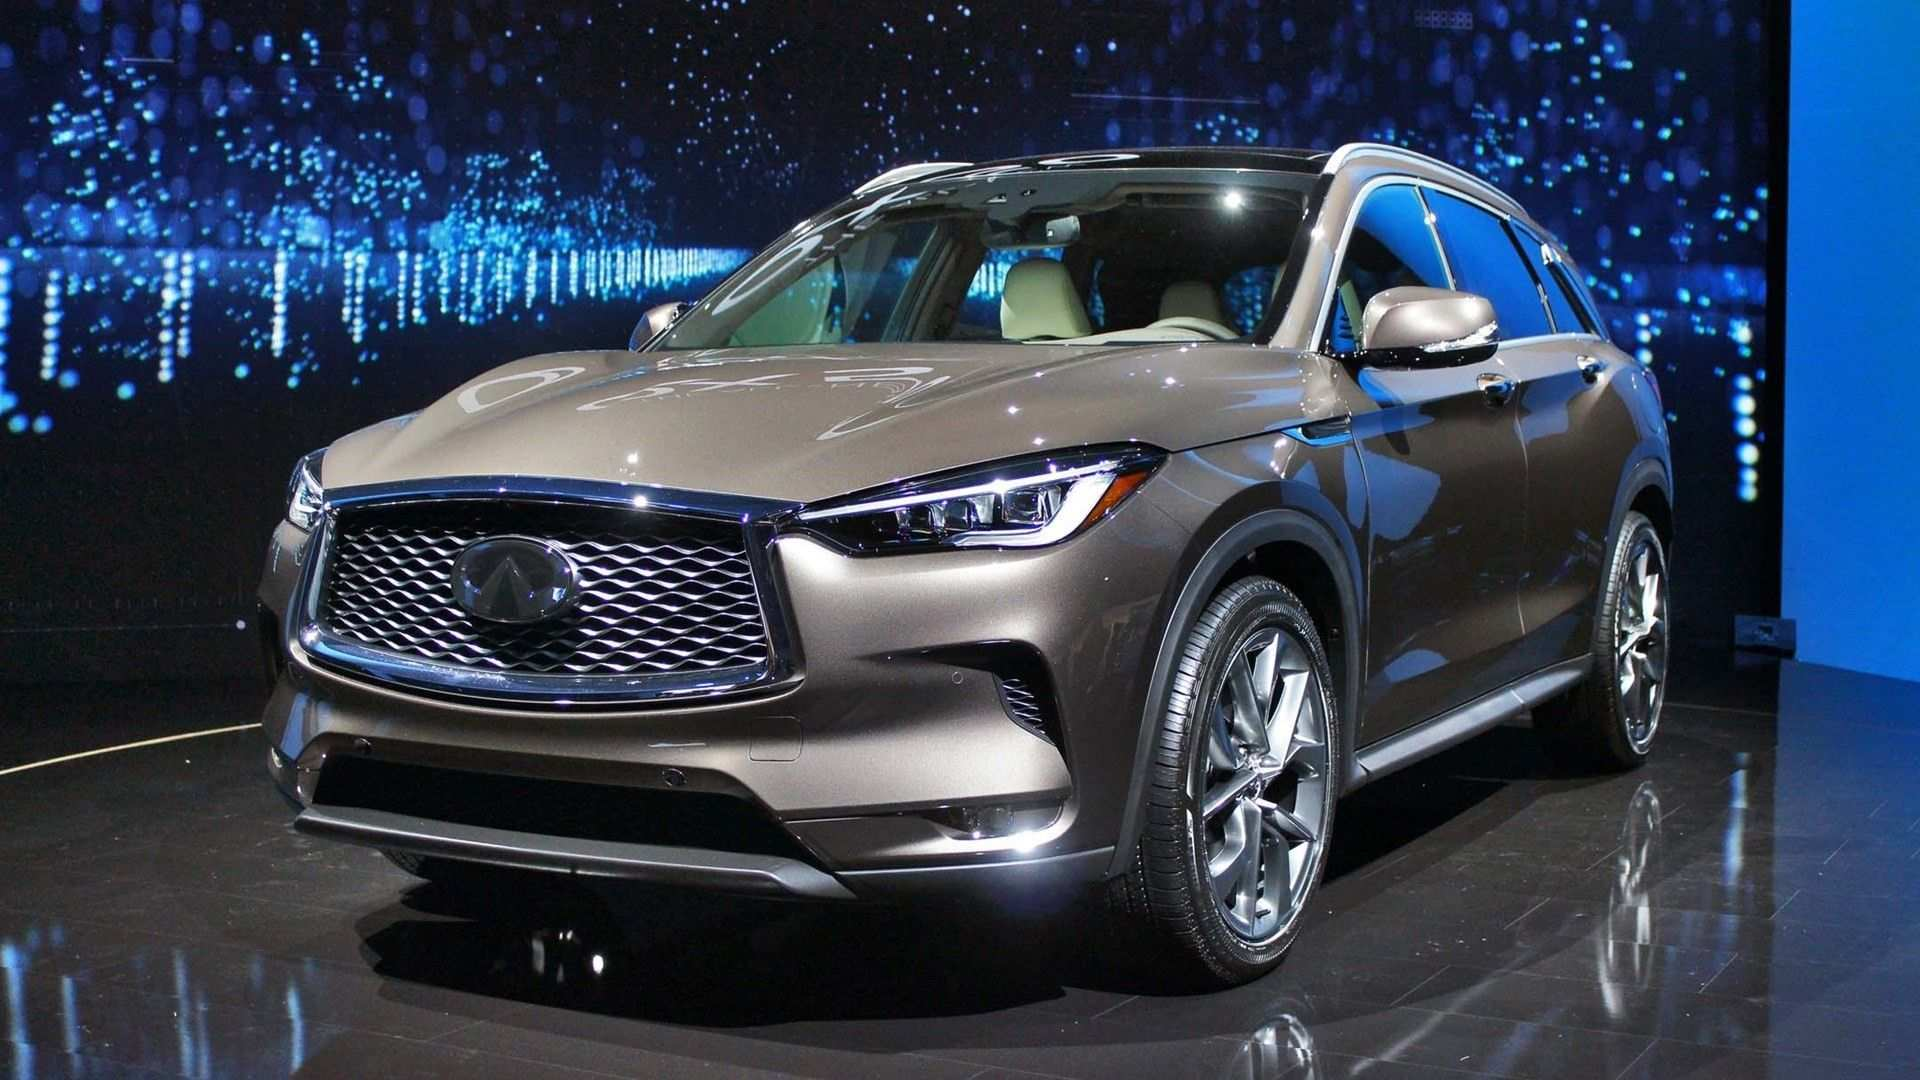 18 Best Review The Infiniti 2019 Models New Release Performance and New Engine with The Infiniti 2019 Models New Release